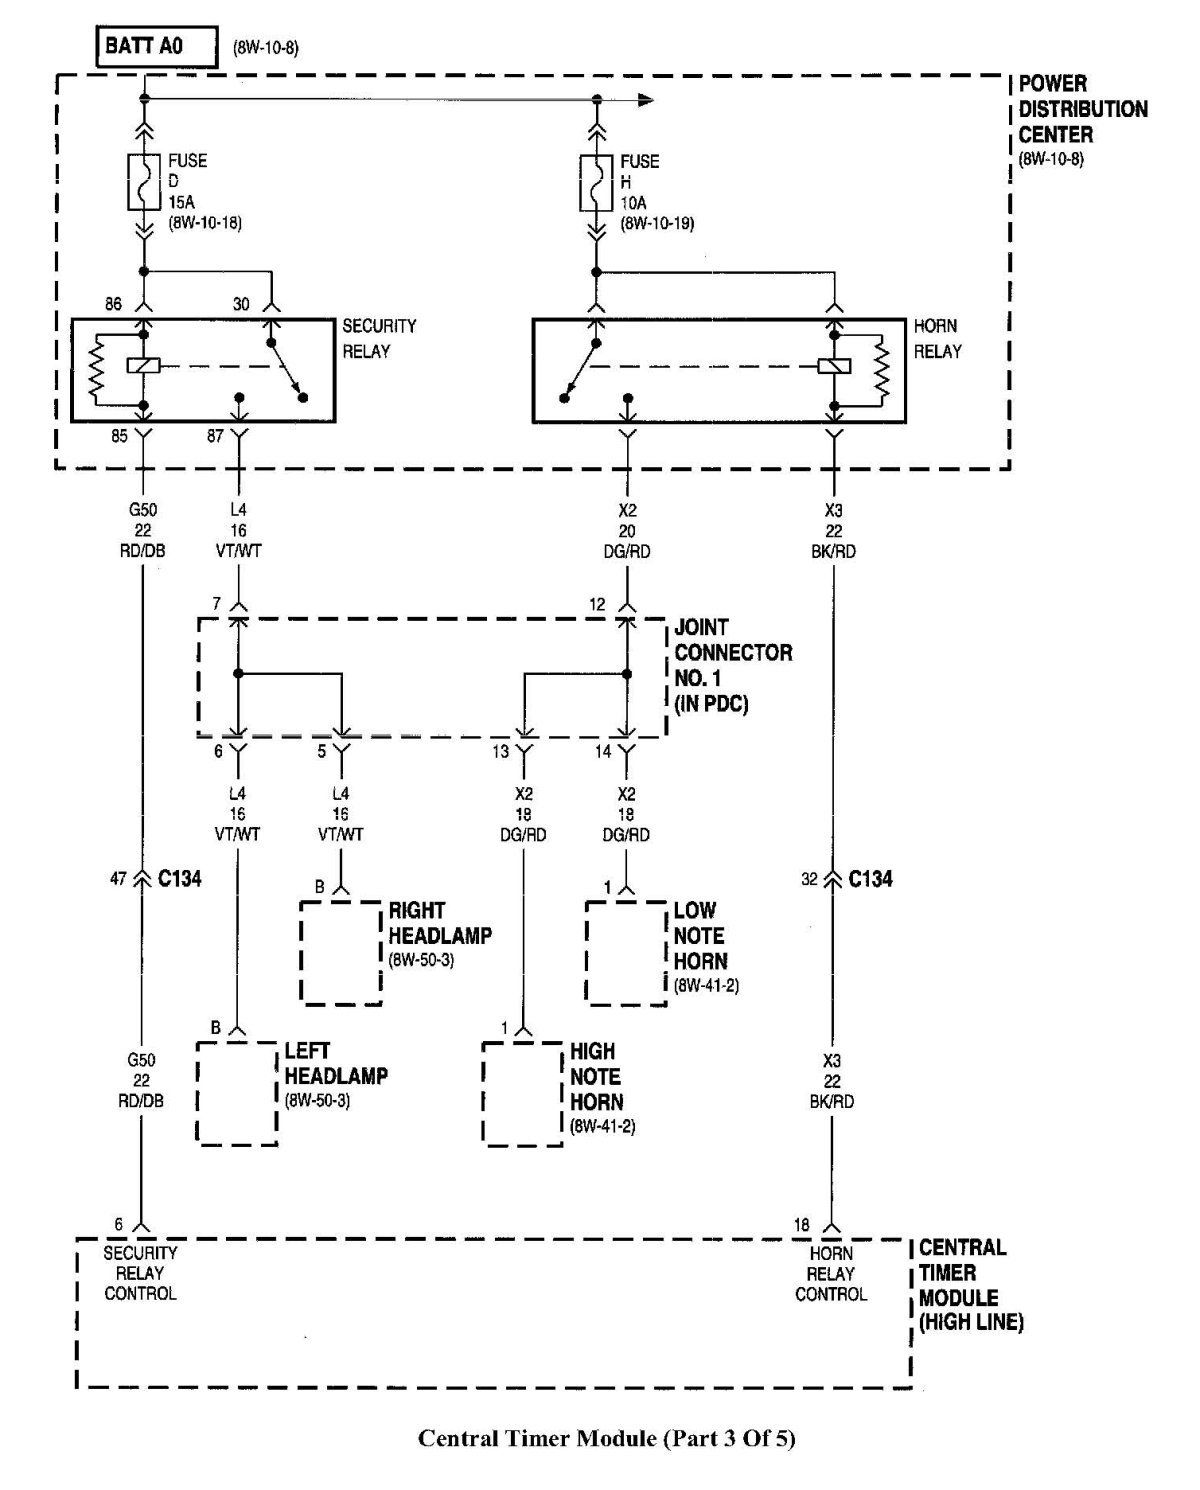 2005 Dodge Ram Wiring Diagram: 1998 Dodge Ram 2500  headlights  the light switch from the wiring,